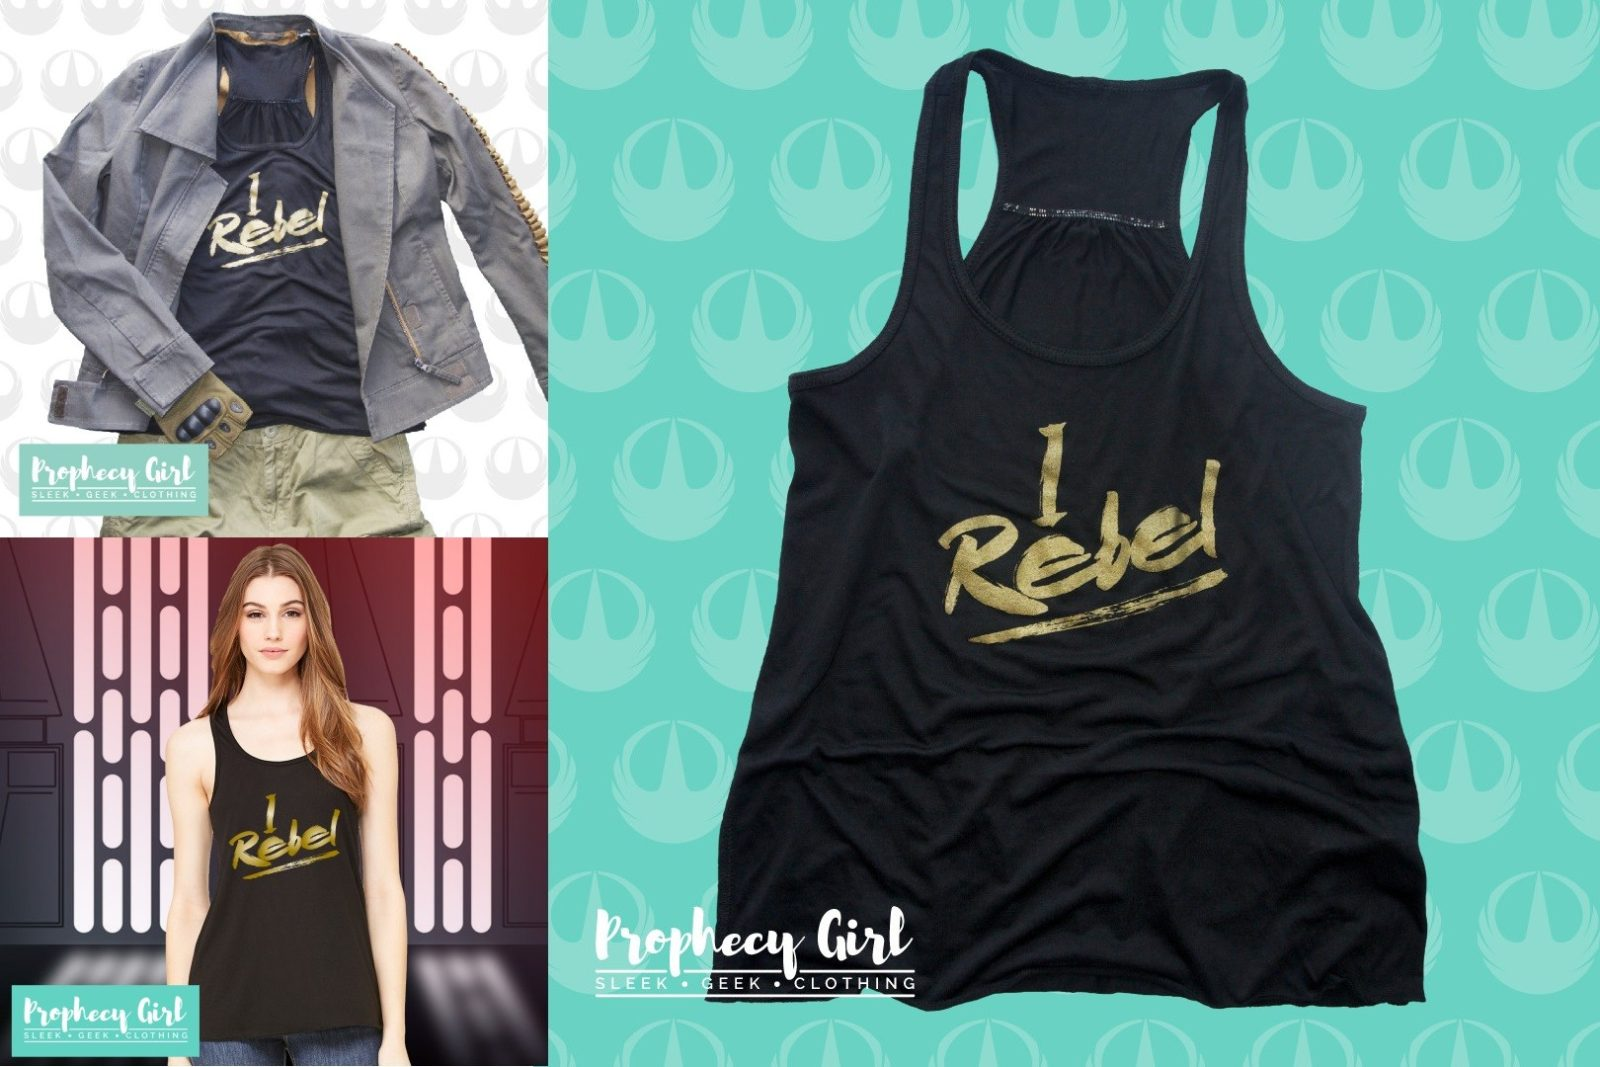 Prophecy Girl Jyn Erso 'I Rebel' Tank Top 50% off